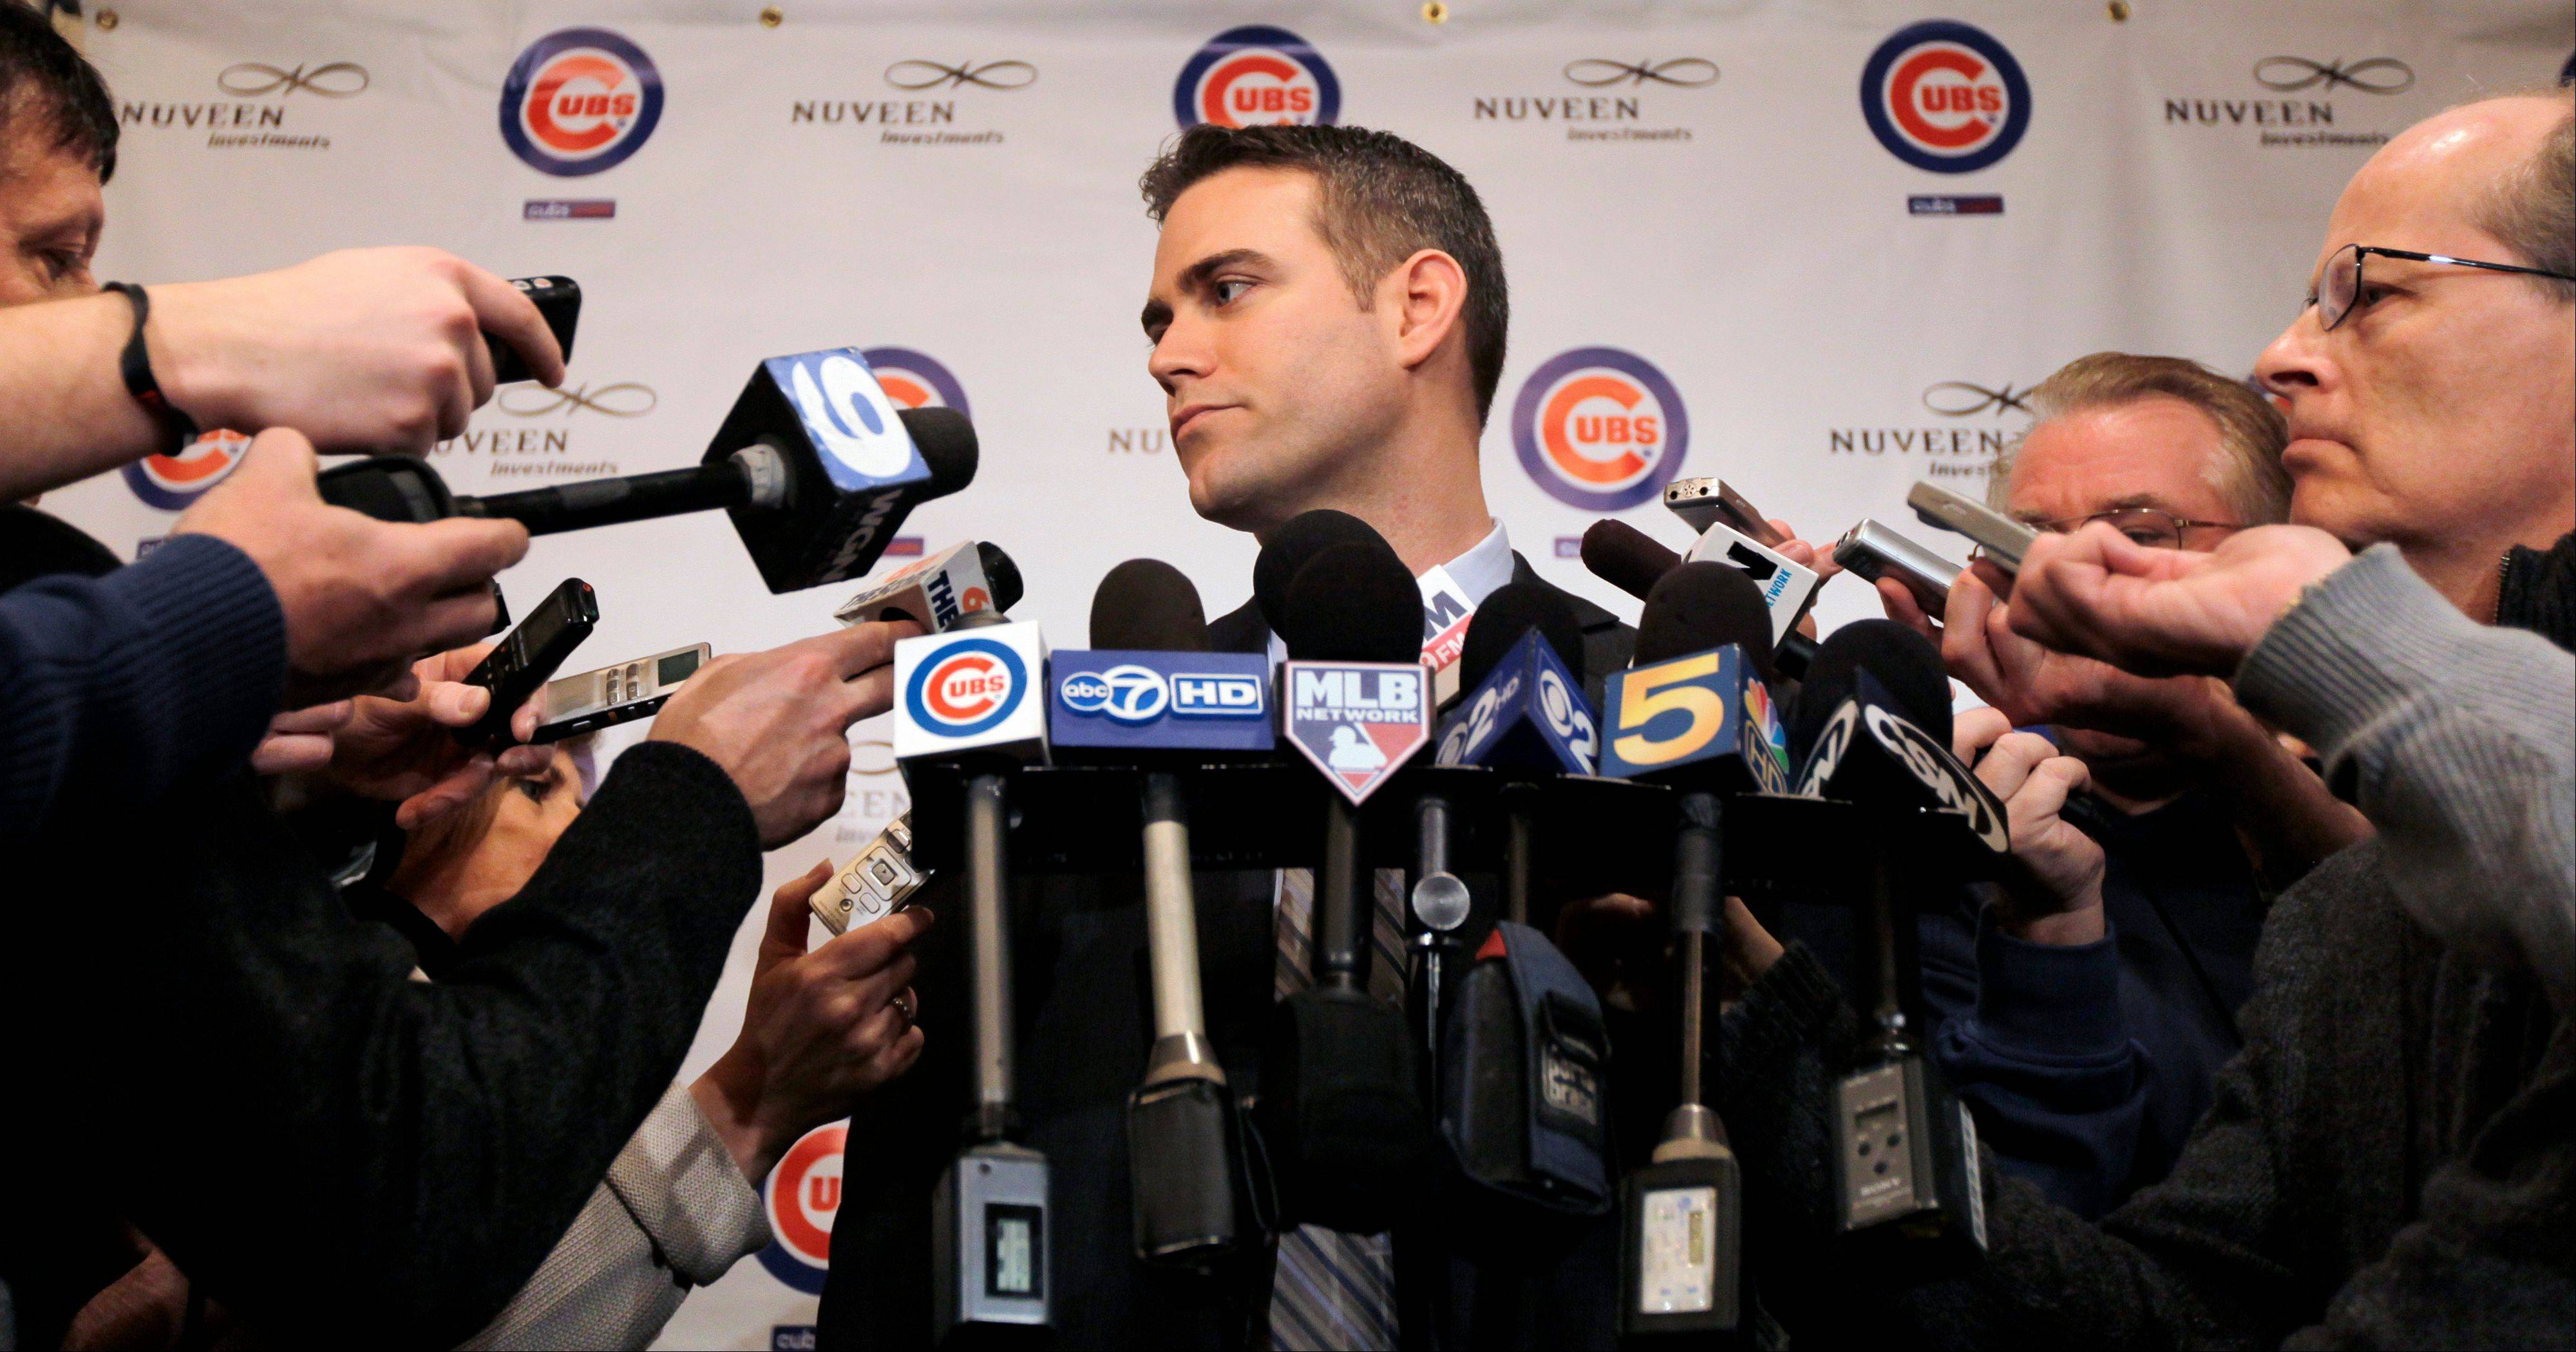 Cubs president Theo Epstein got a lot of questions from the media when he attended his first Cubs Convention in 2012. On Saturday, he'll face some serious questions from fans as well during the 2014 Cubs Convention.